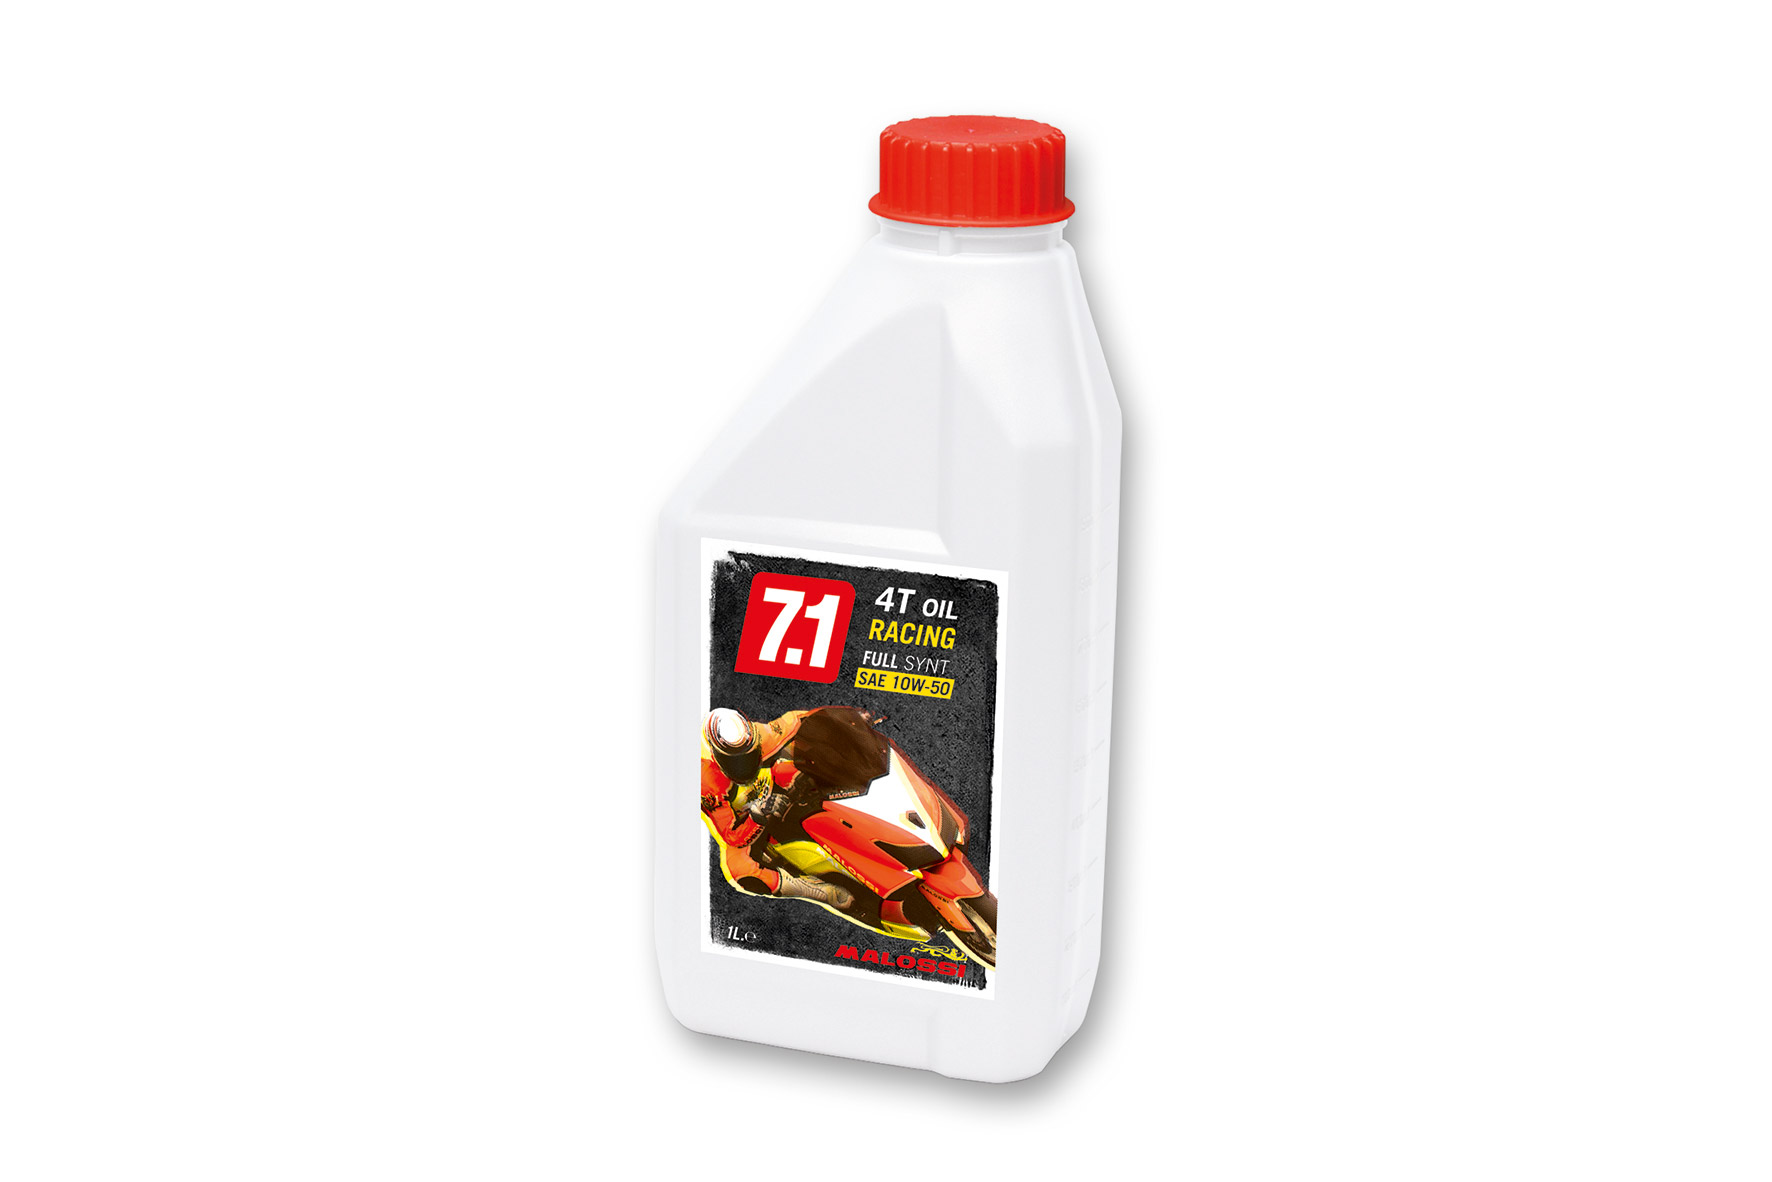 BOTTLE 7.1 4T OIL RACING Full Synt (SAE 10W-50) 1L